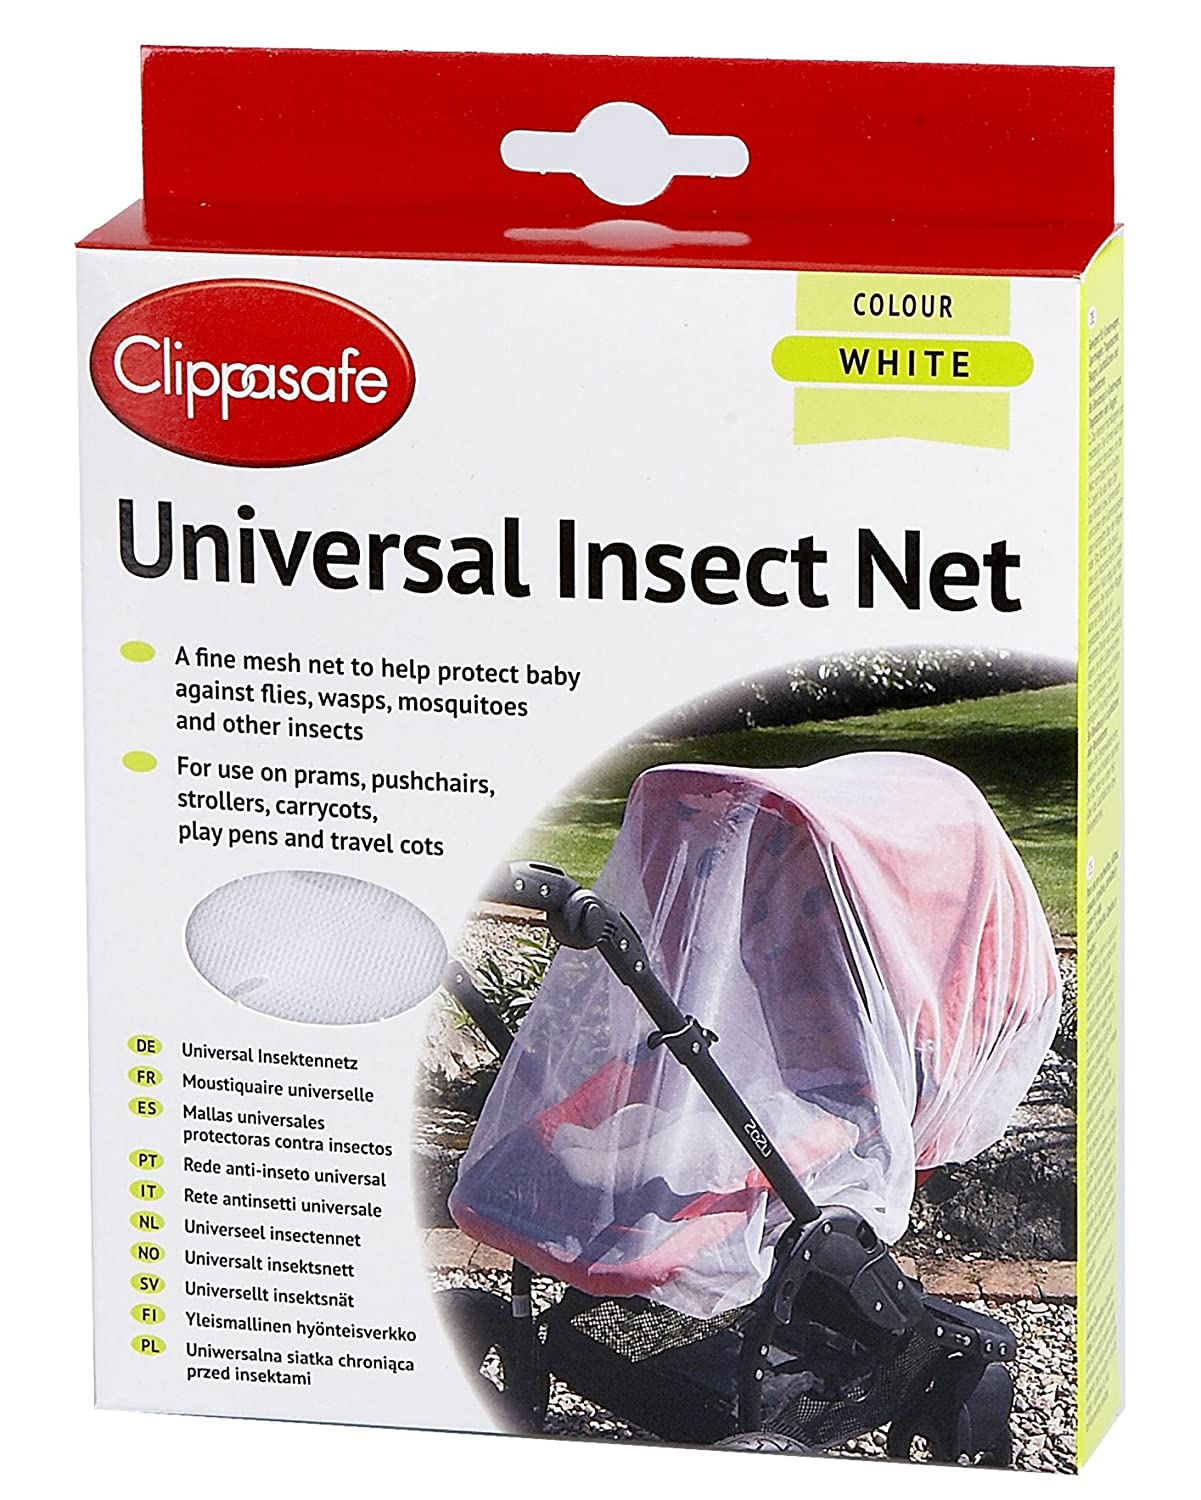 Clippasafe Pram & Pushchair Universal Insect Net One Size